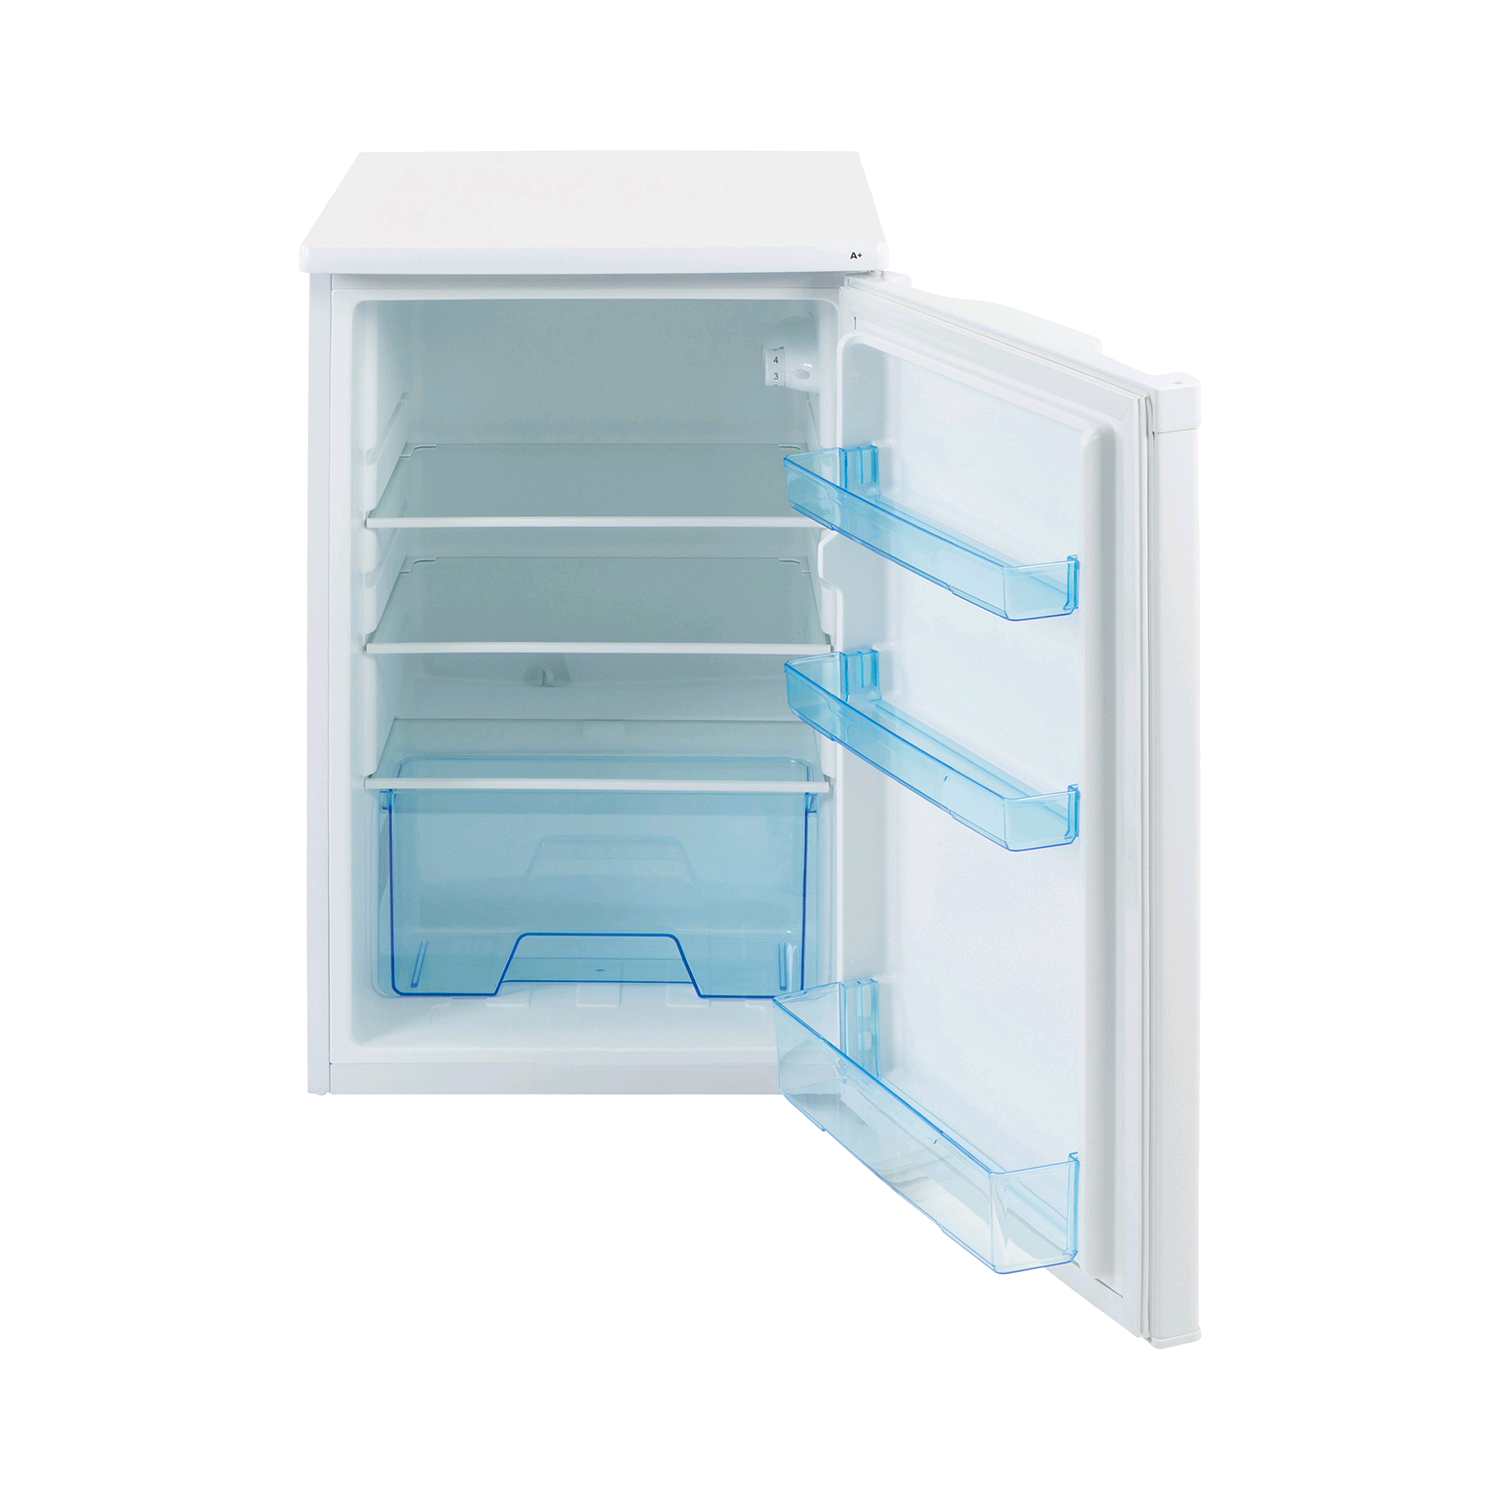 Lec White Larder Fridge 3.95cft H845 W501 D540mm A+ Energy